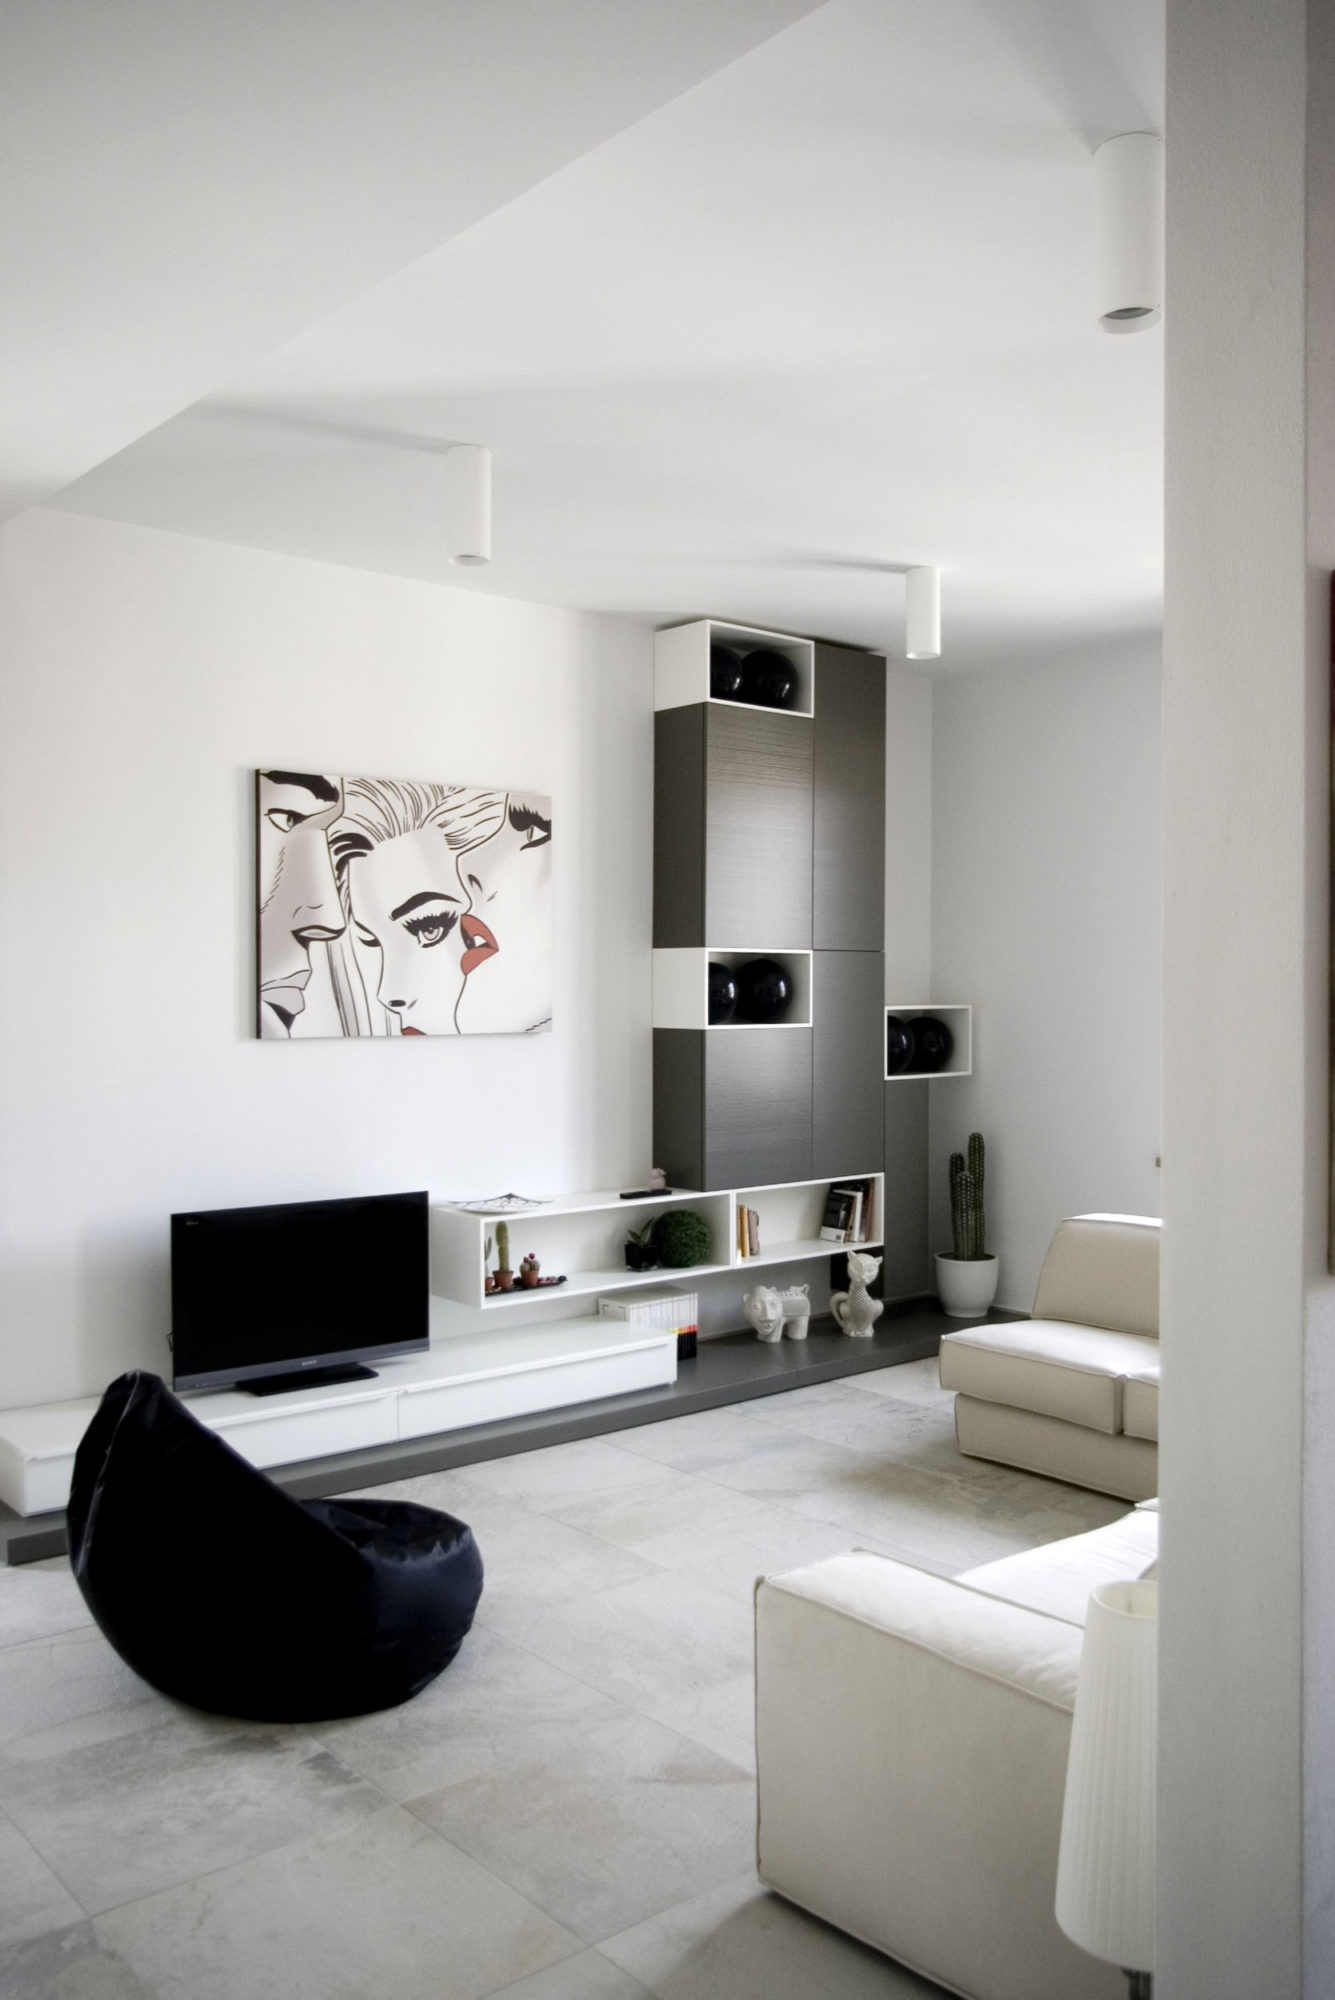 Minimalist interior by msx2 architettura for Minimalist home interior